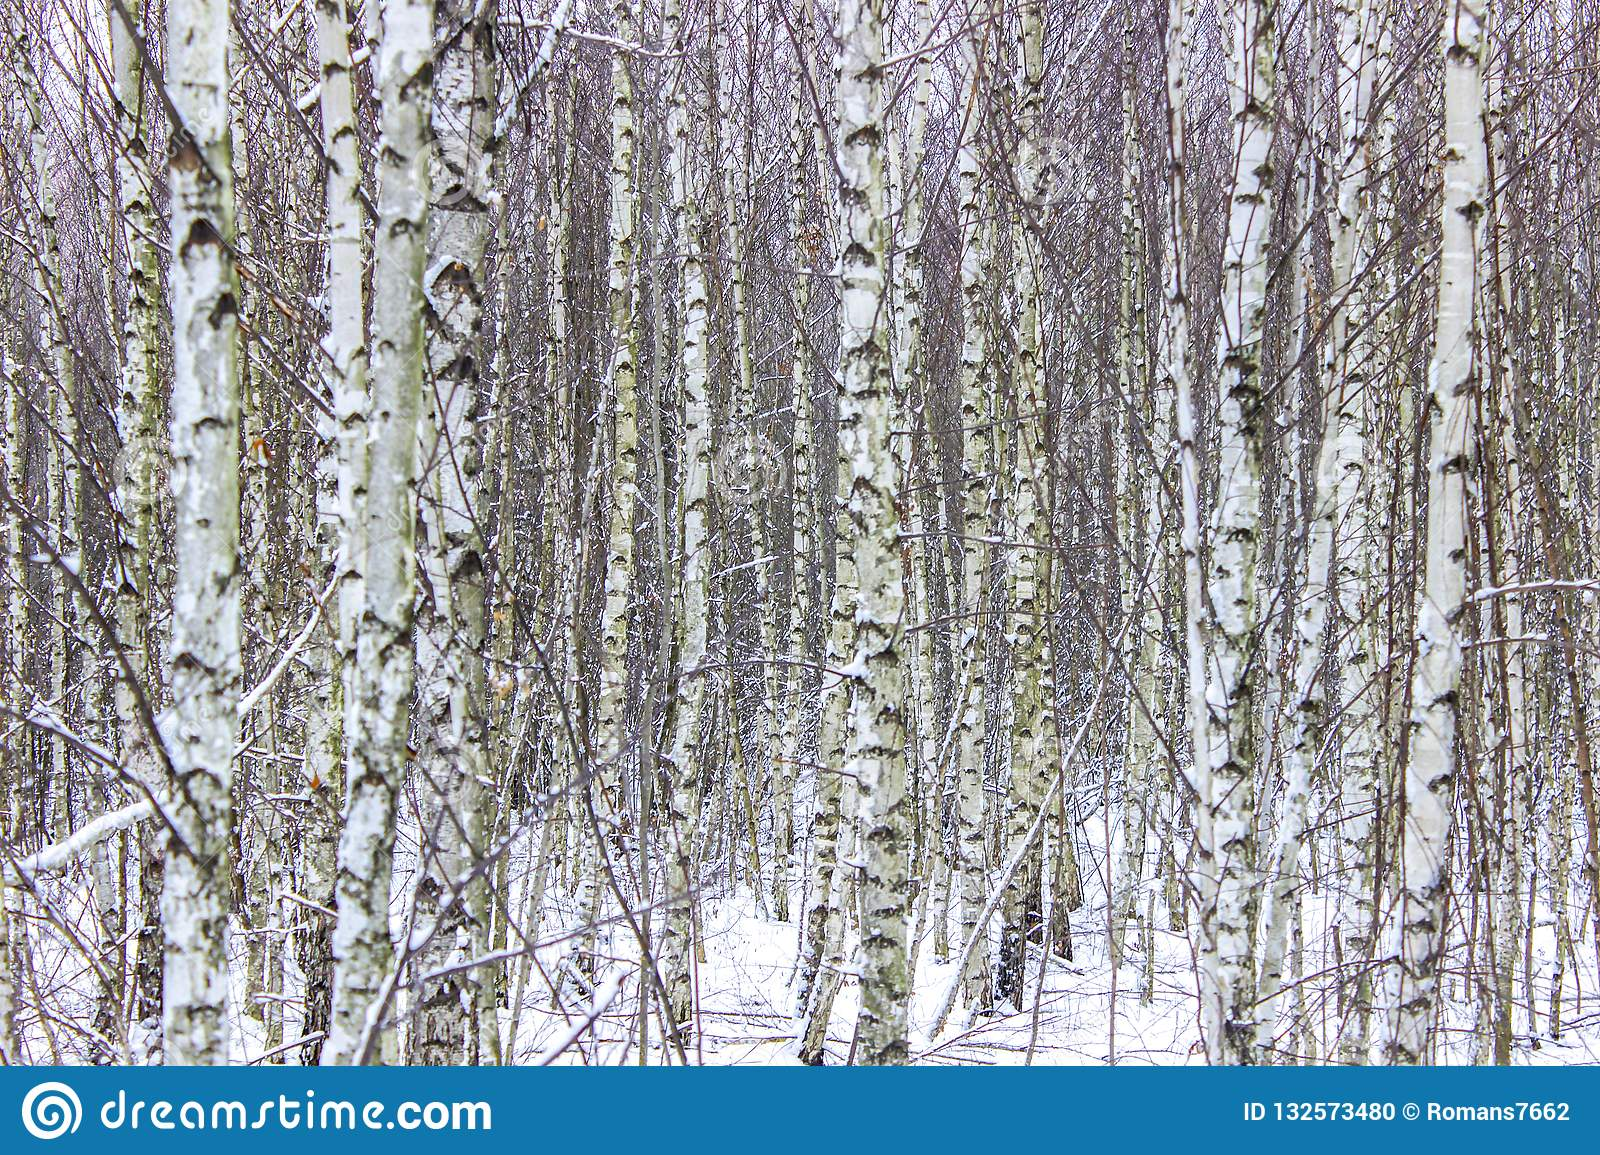 Birches on the forest edge